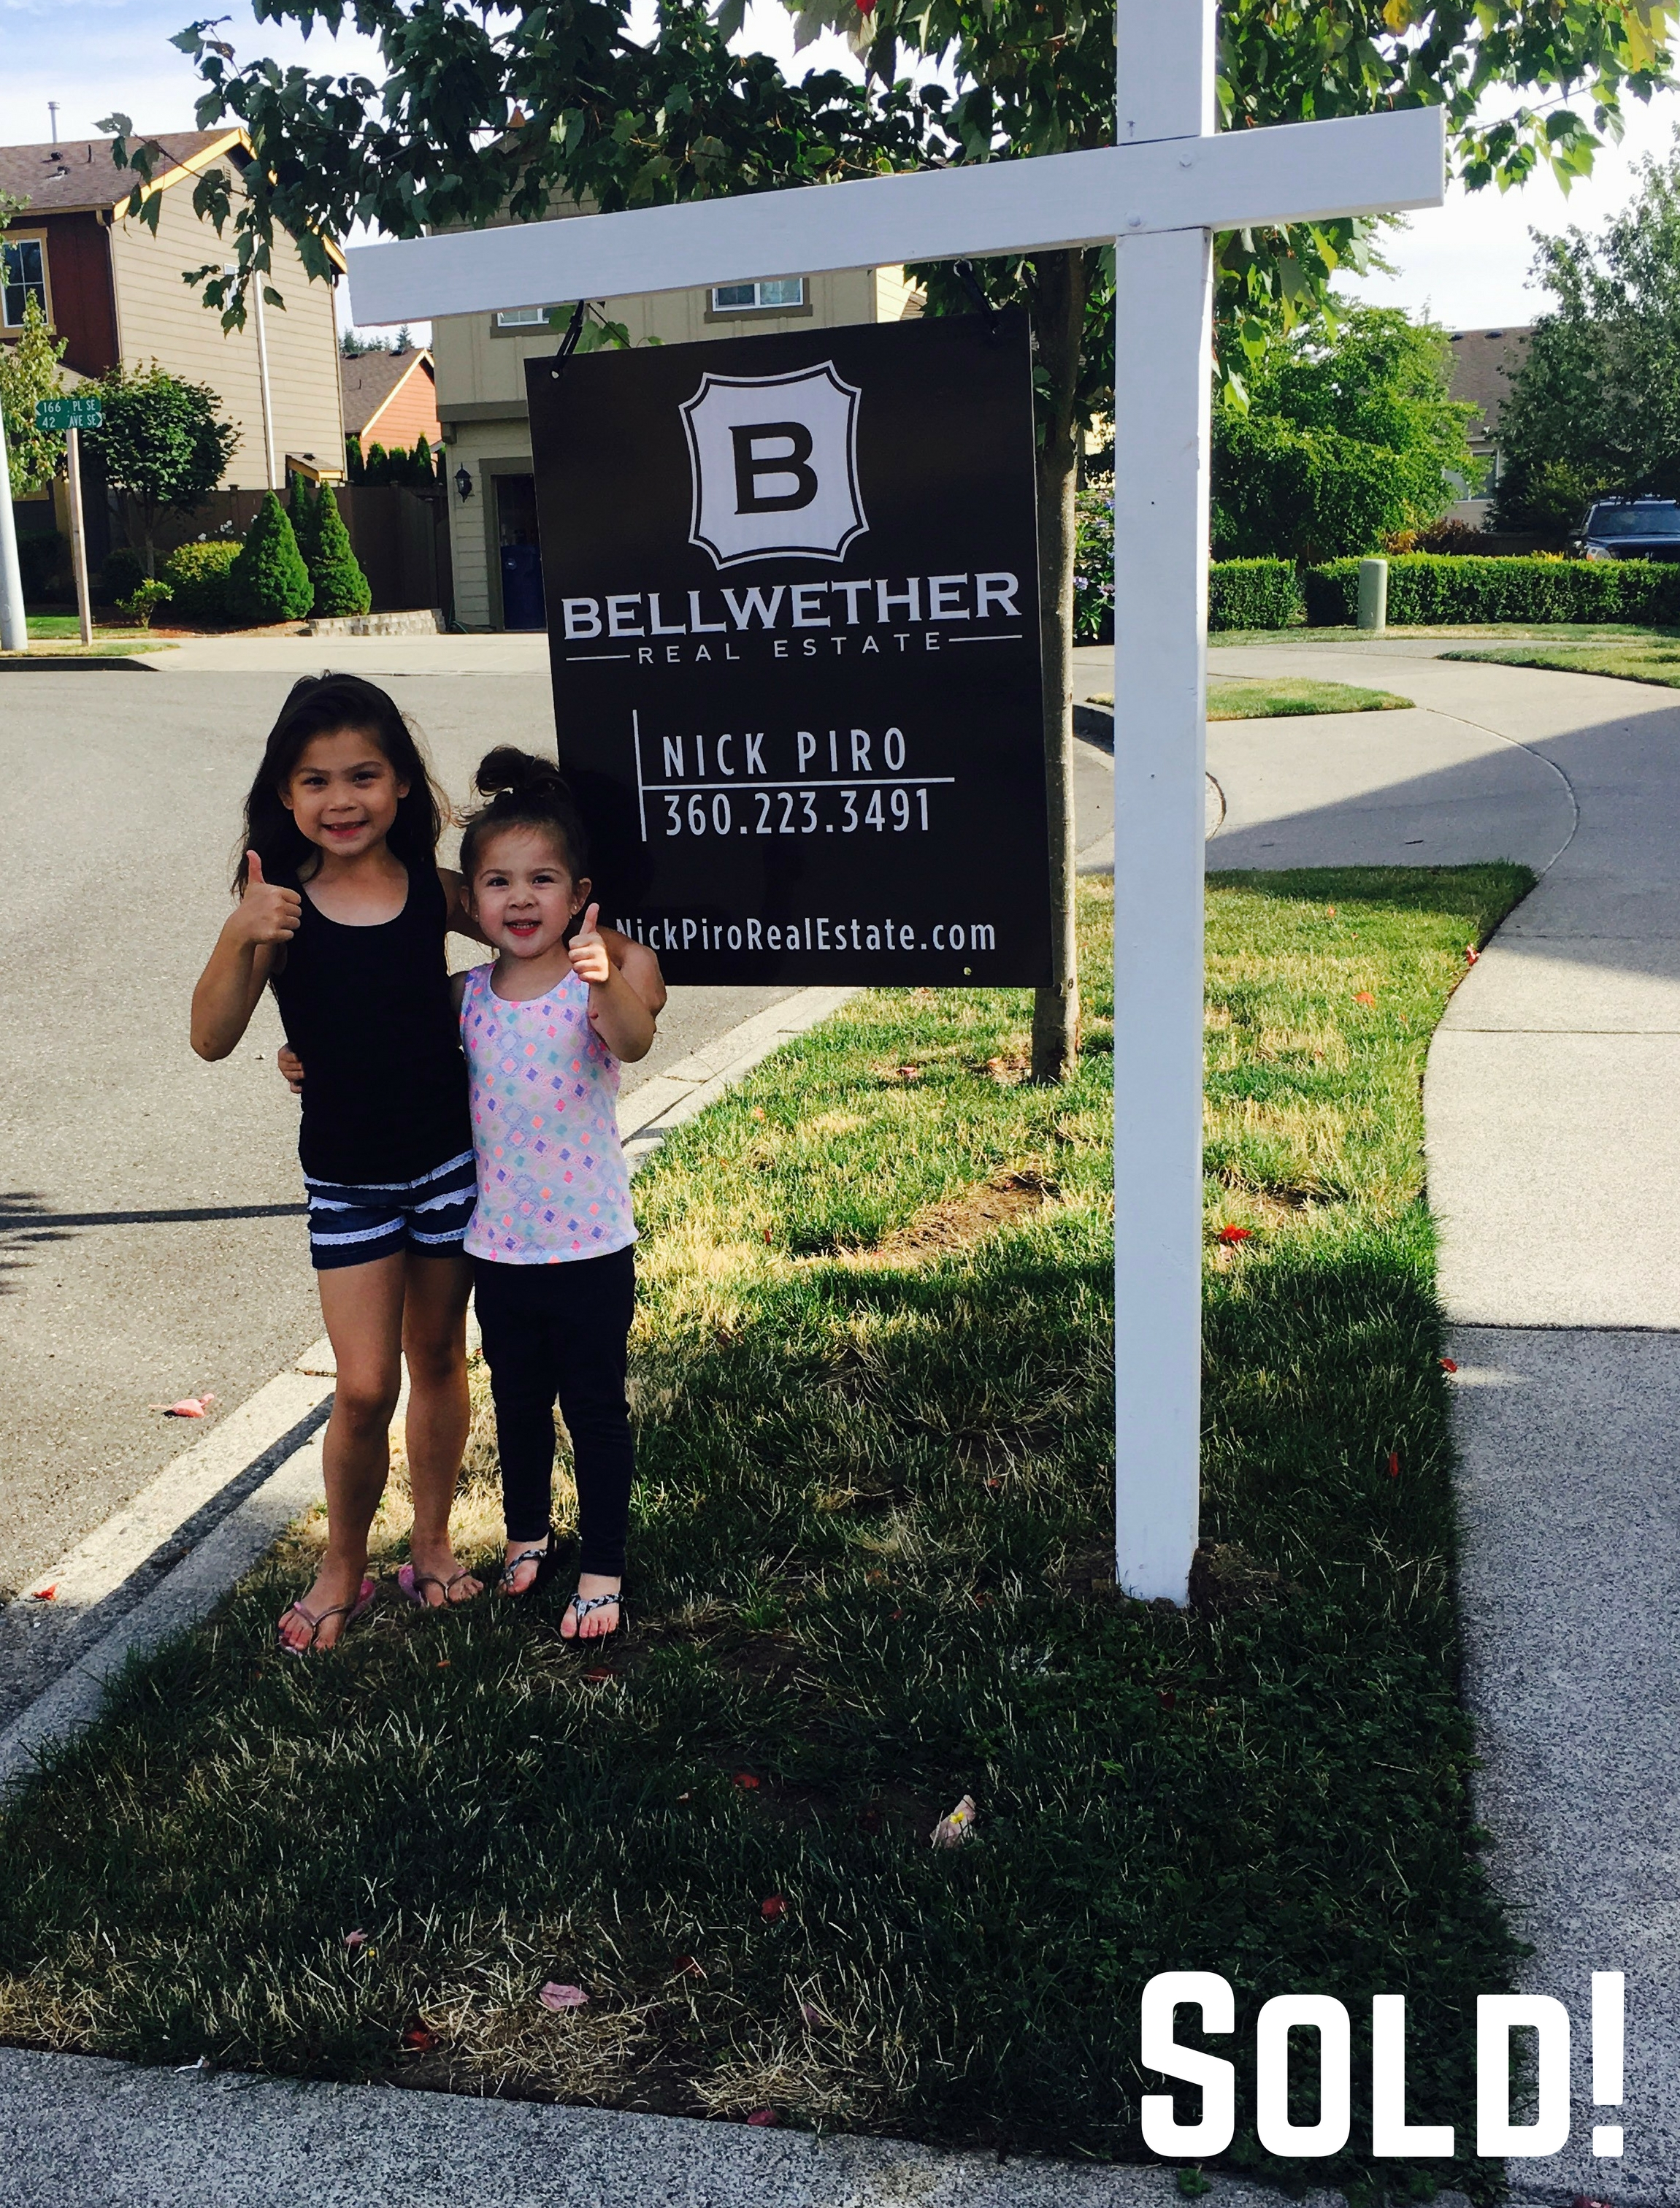 Home sold by Bellwether Real Estate